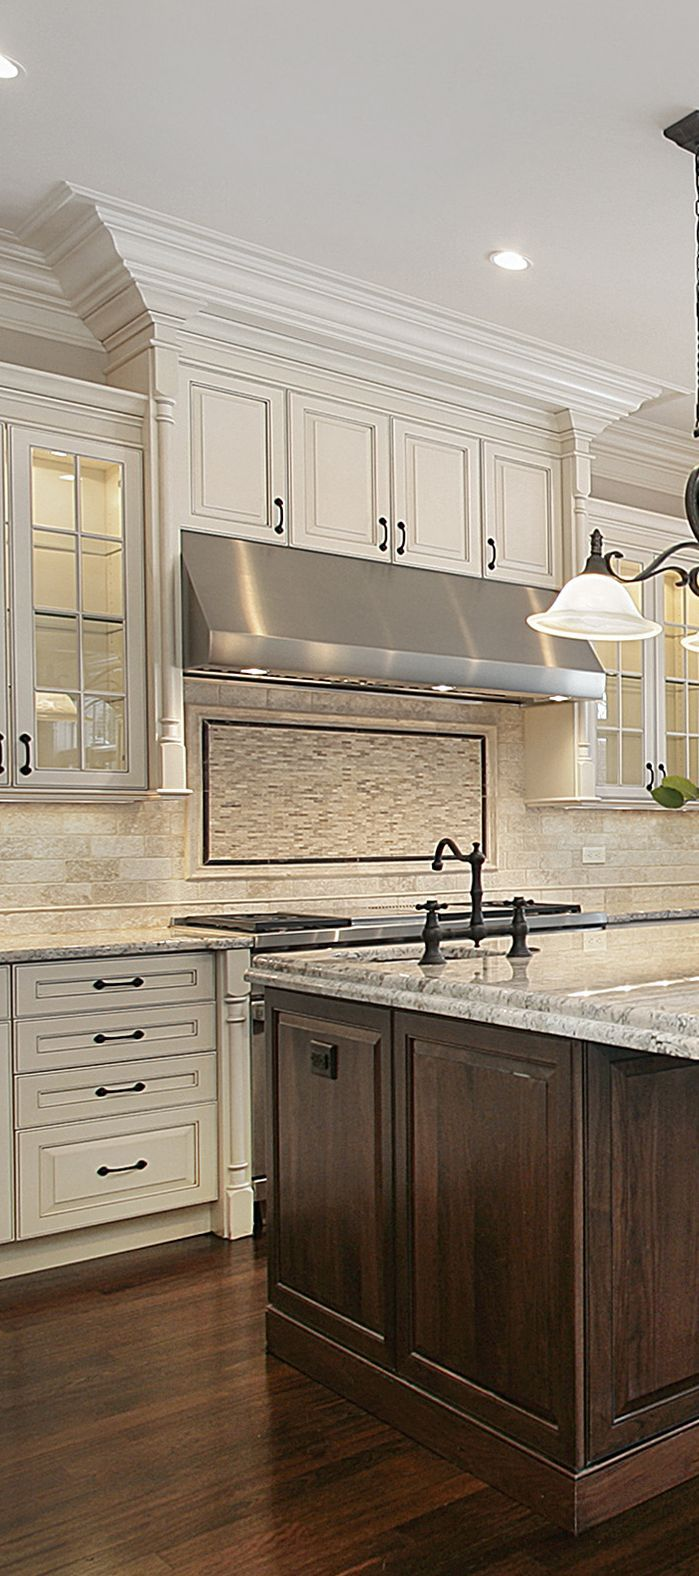 Home improvements refference small kitchen islands for Different shaped kitchen island designs with seating